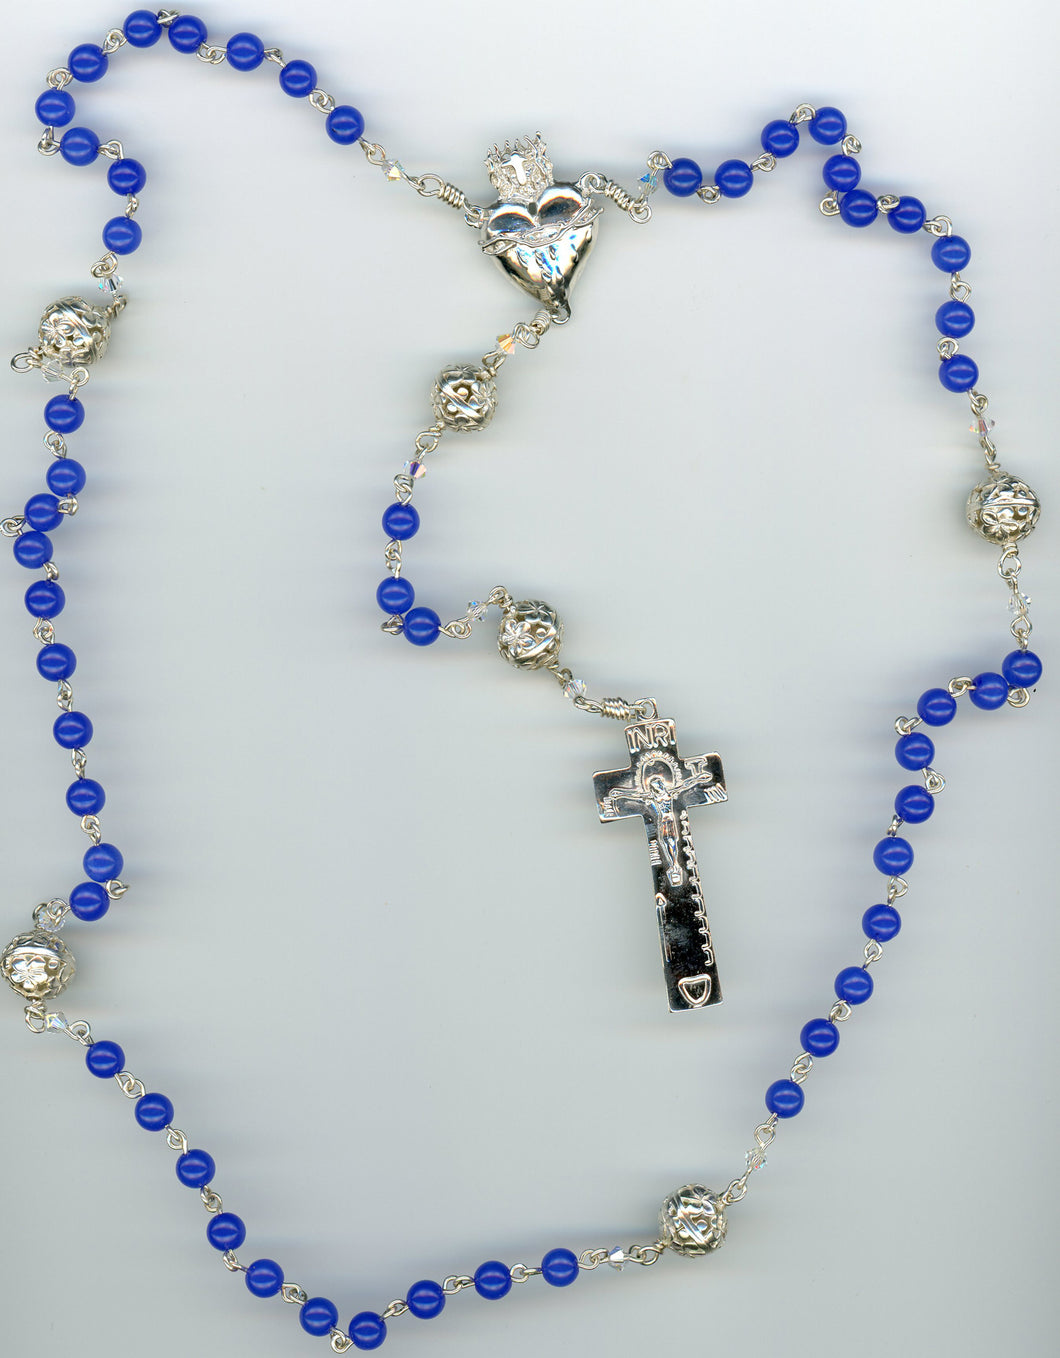 Blue Agate Rosary with Sterling Silver Our Father beads